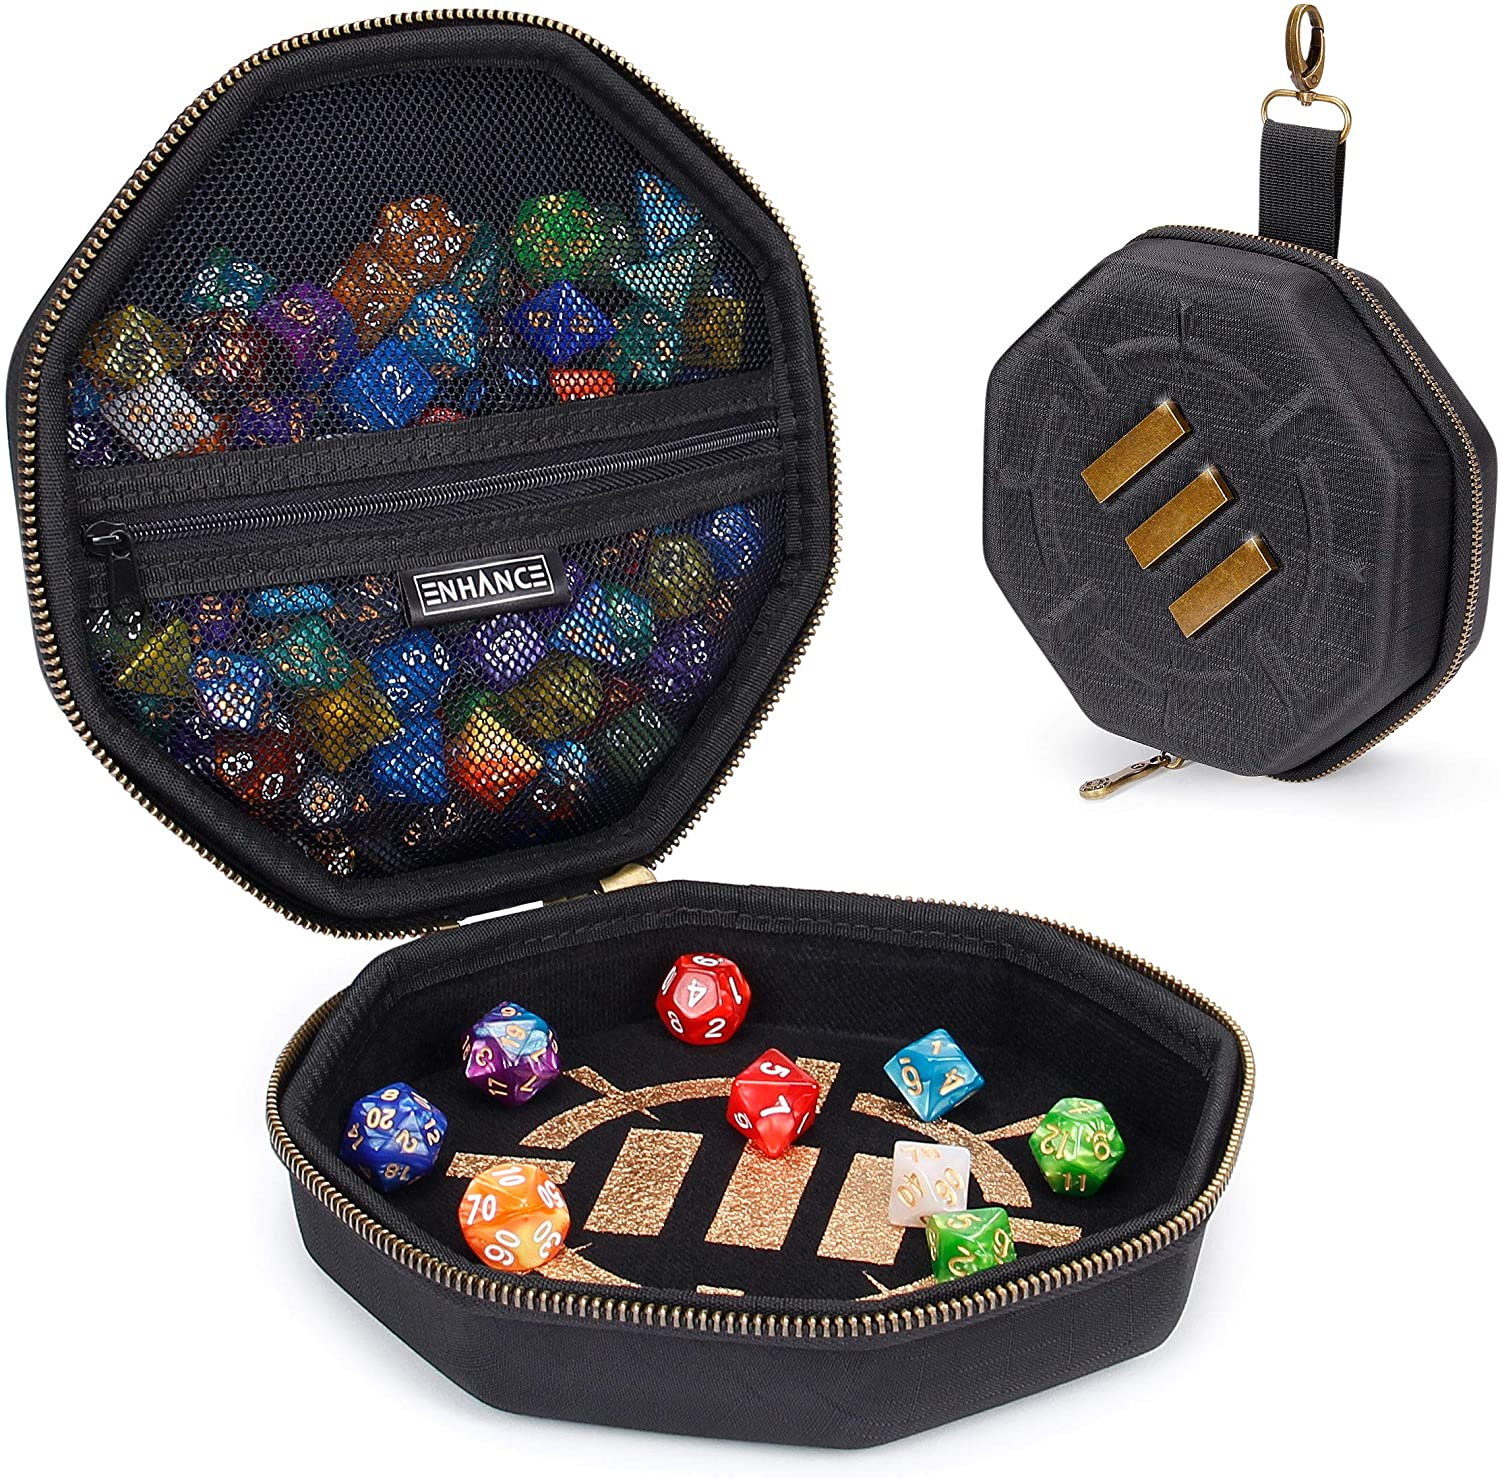 Wenge dice tray dungeons /& dragons or pathfinder great gift for a Critical Role fan or as a valet tray dice box for dnd